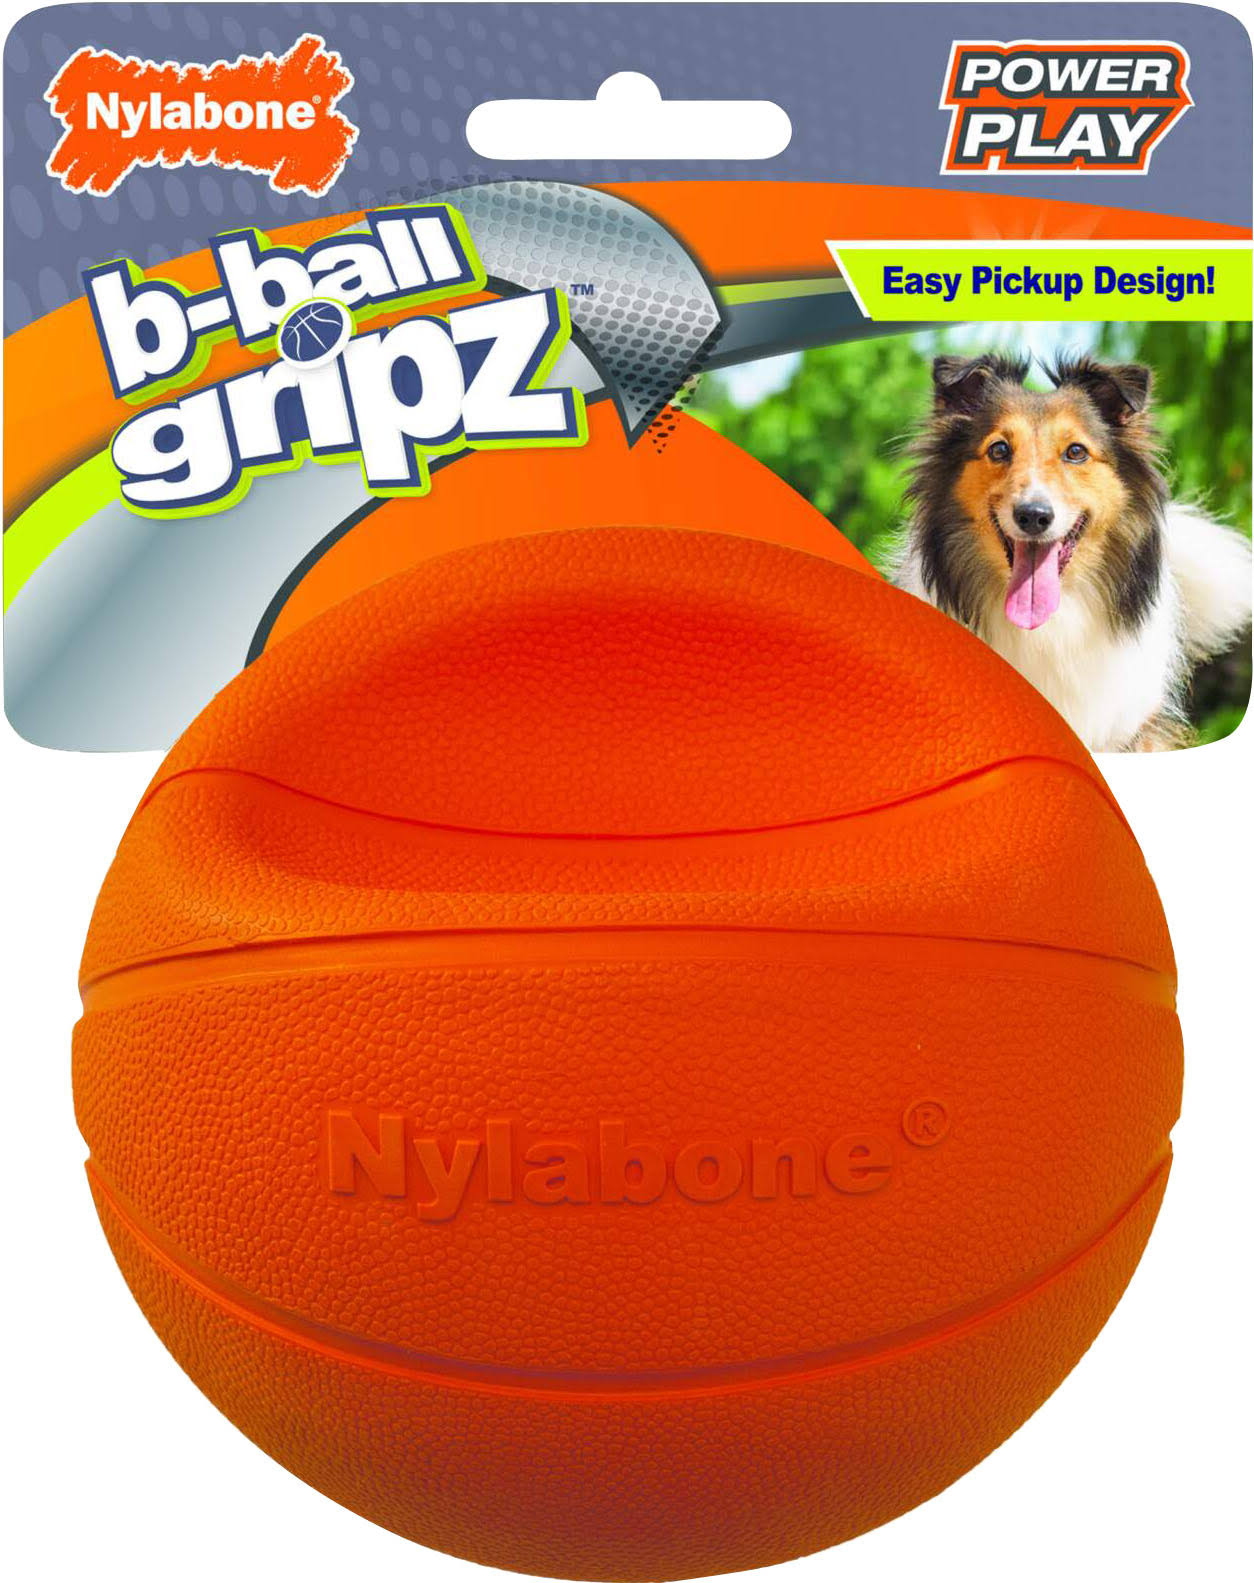 Nylabone Power Play Gripz B-ball Dog Toy